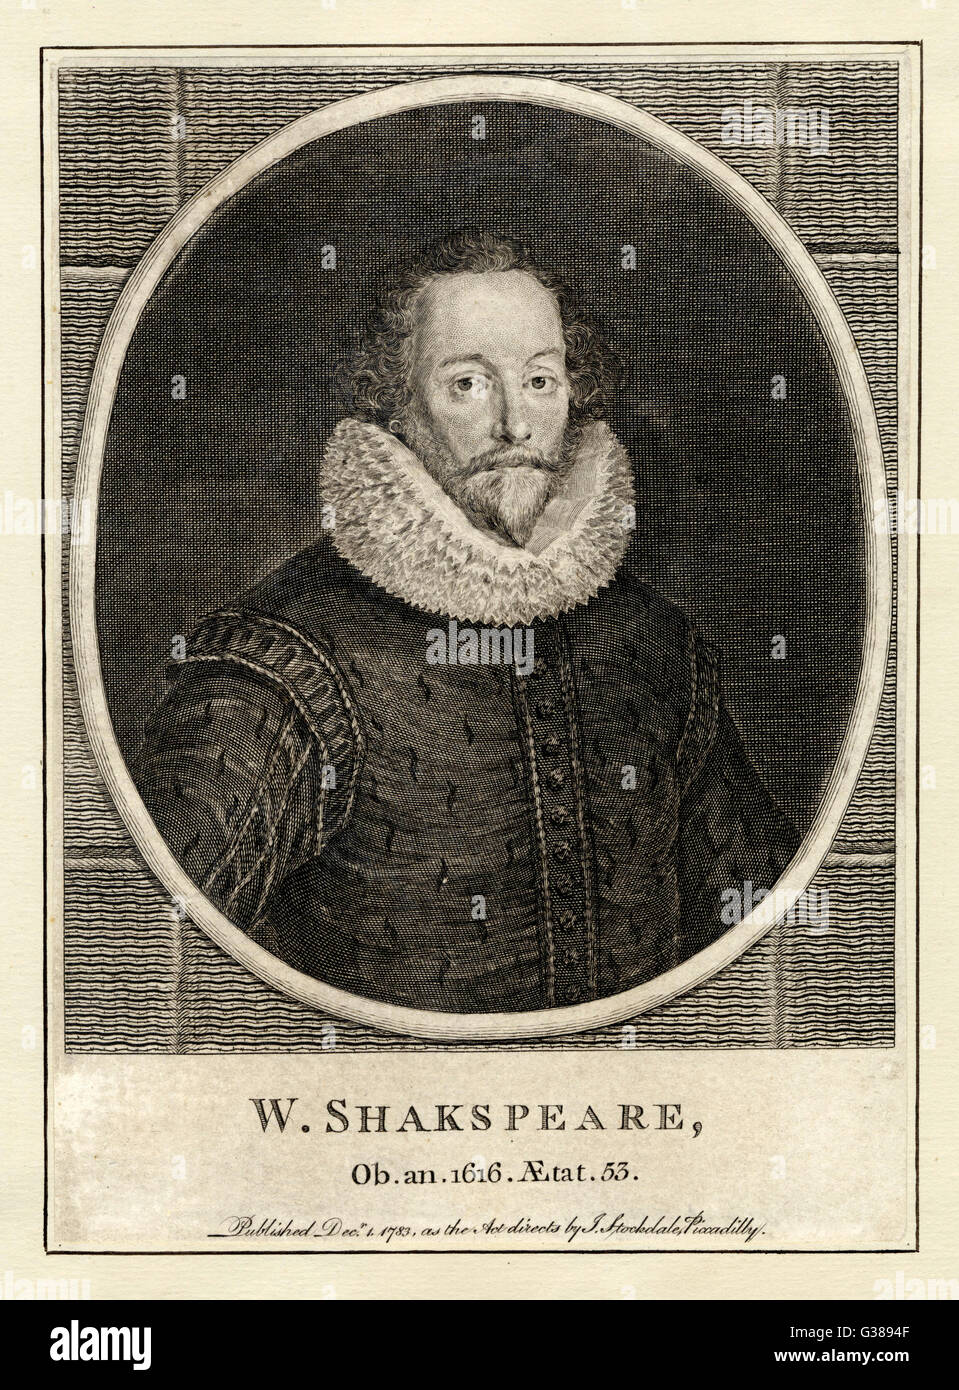 WILLIAM SHAKESPEARE (1564 - 1616) Playwright and poet. - Stock Image